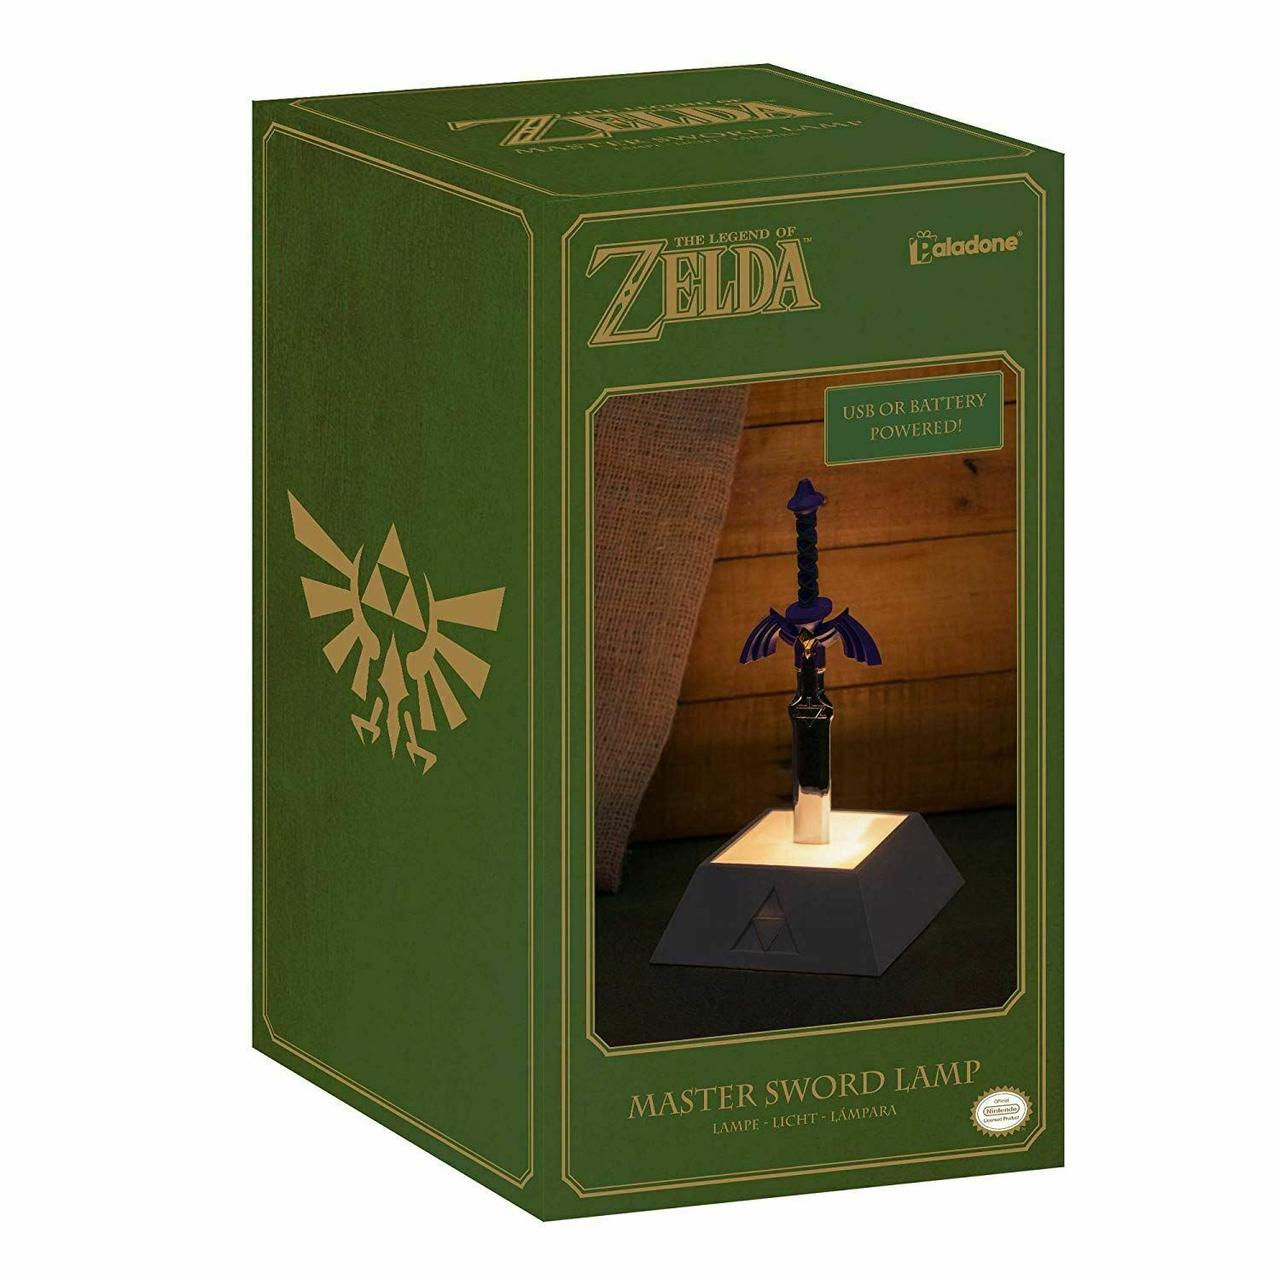 Світильник The Legend of Zelda Master Sword Lamp (Paladone)